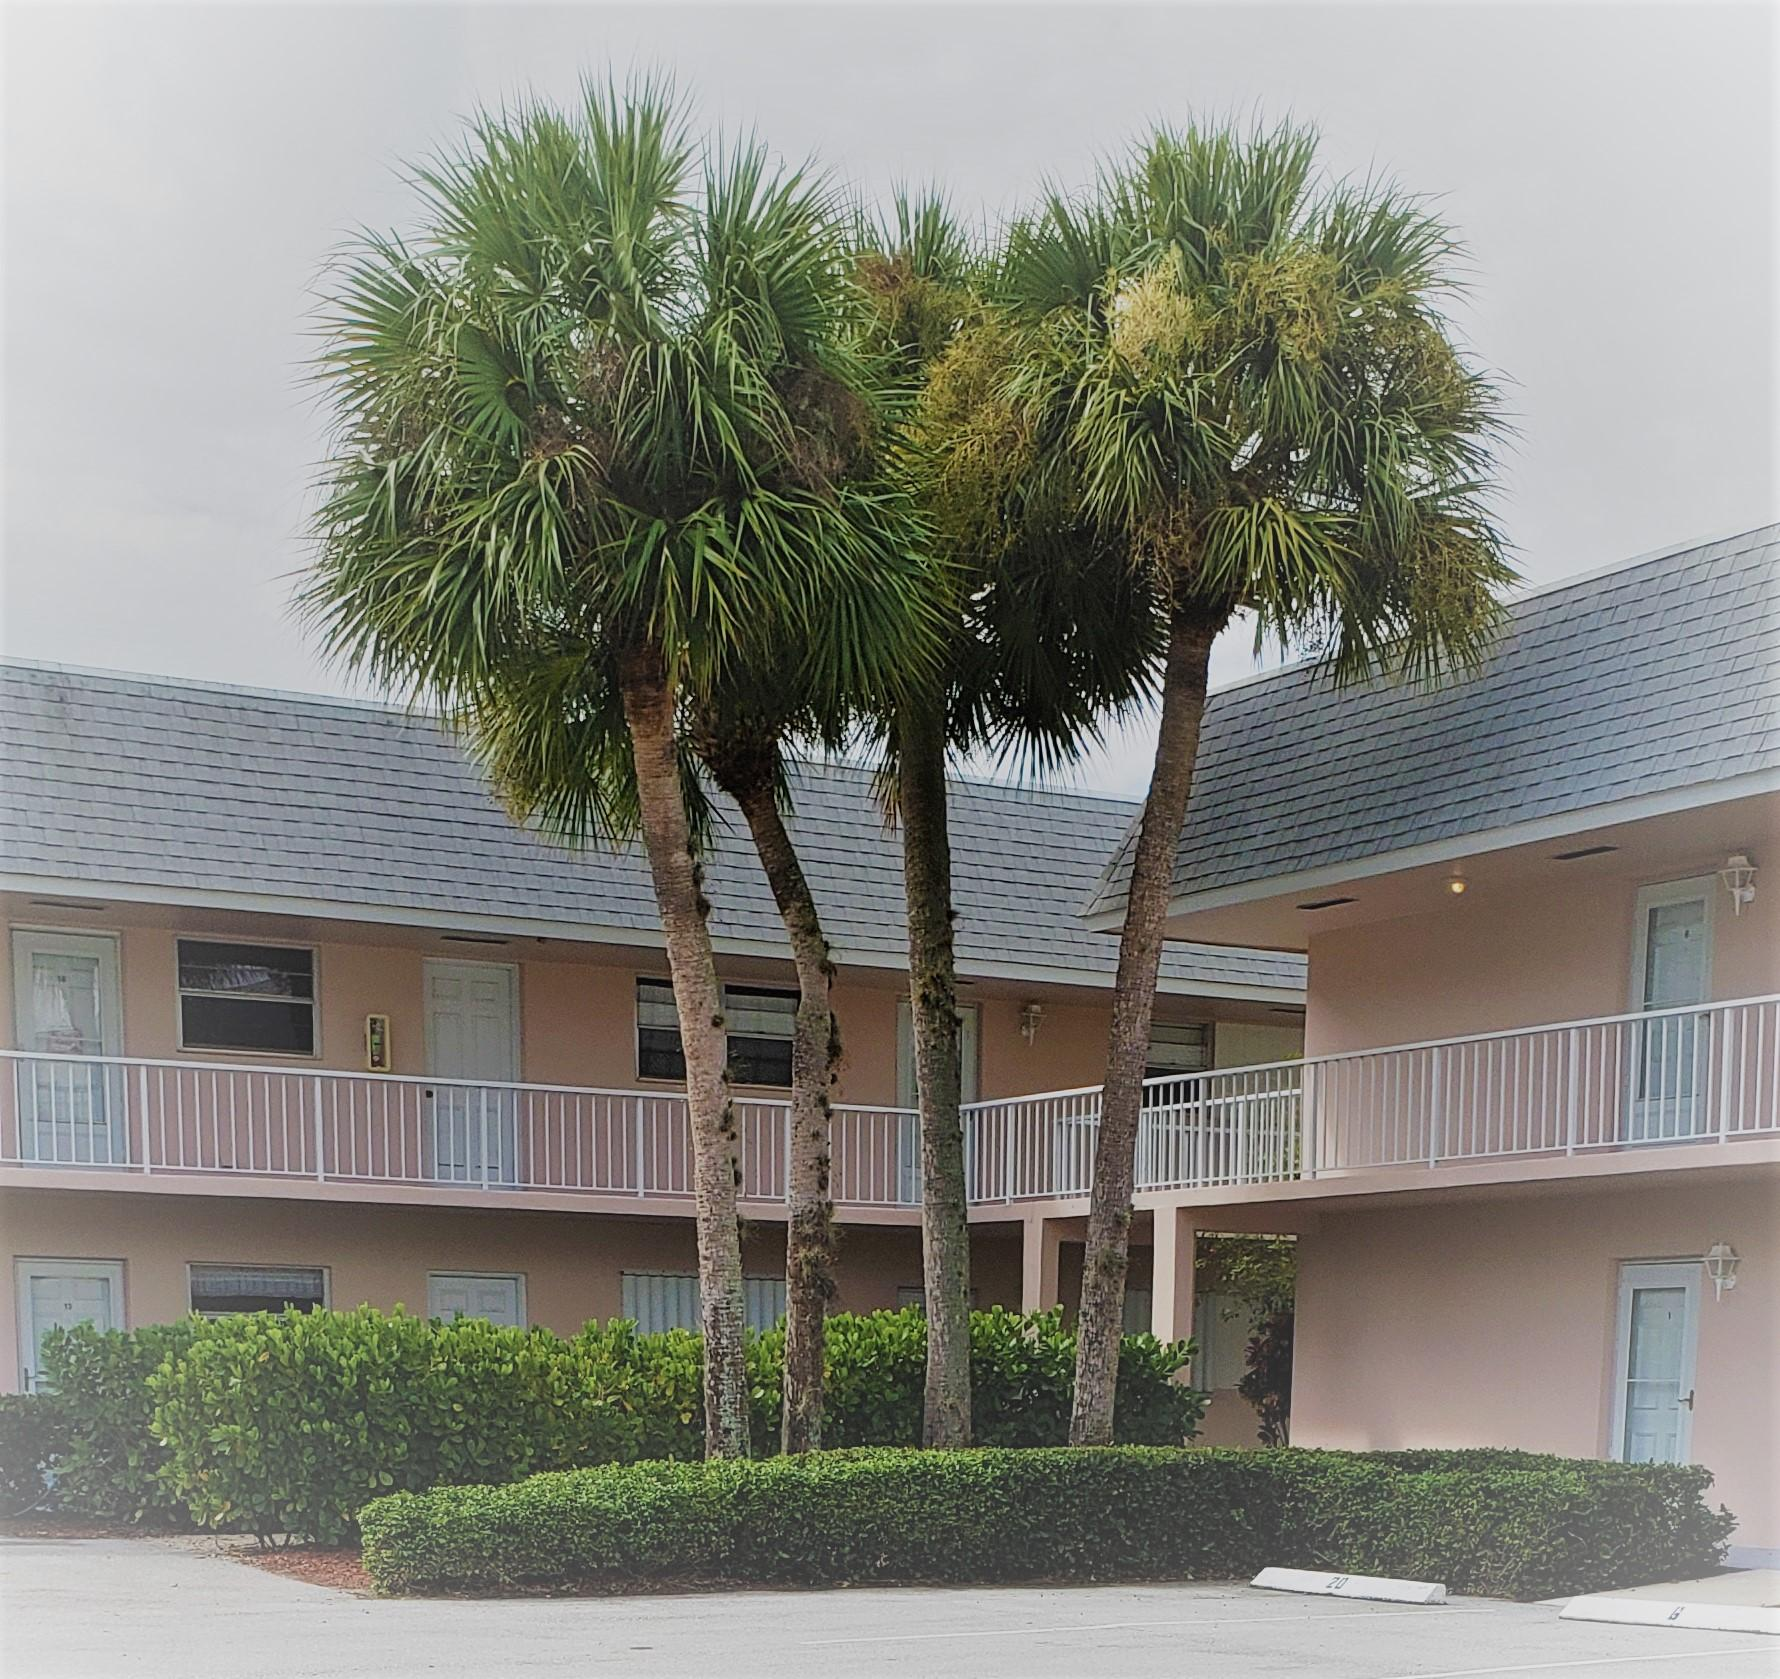 18081 Country Club Drive 19, Jupiter, Florida 33469, 2 Bedrooms Bedrooms, ,1 BathroomBathrooms,A,Condominium,Country Club,RX-10569905